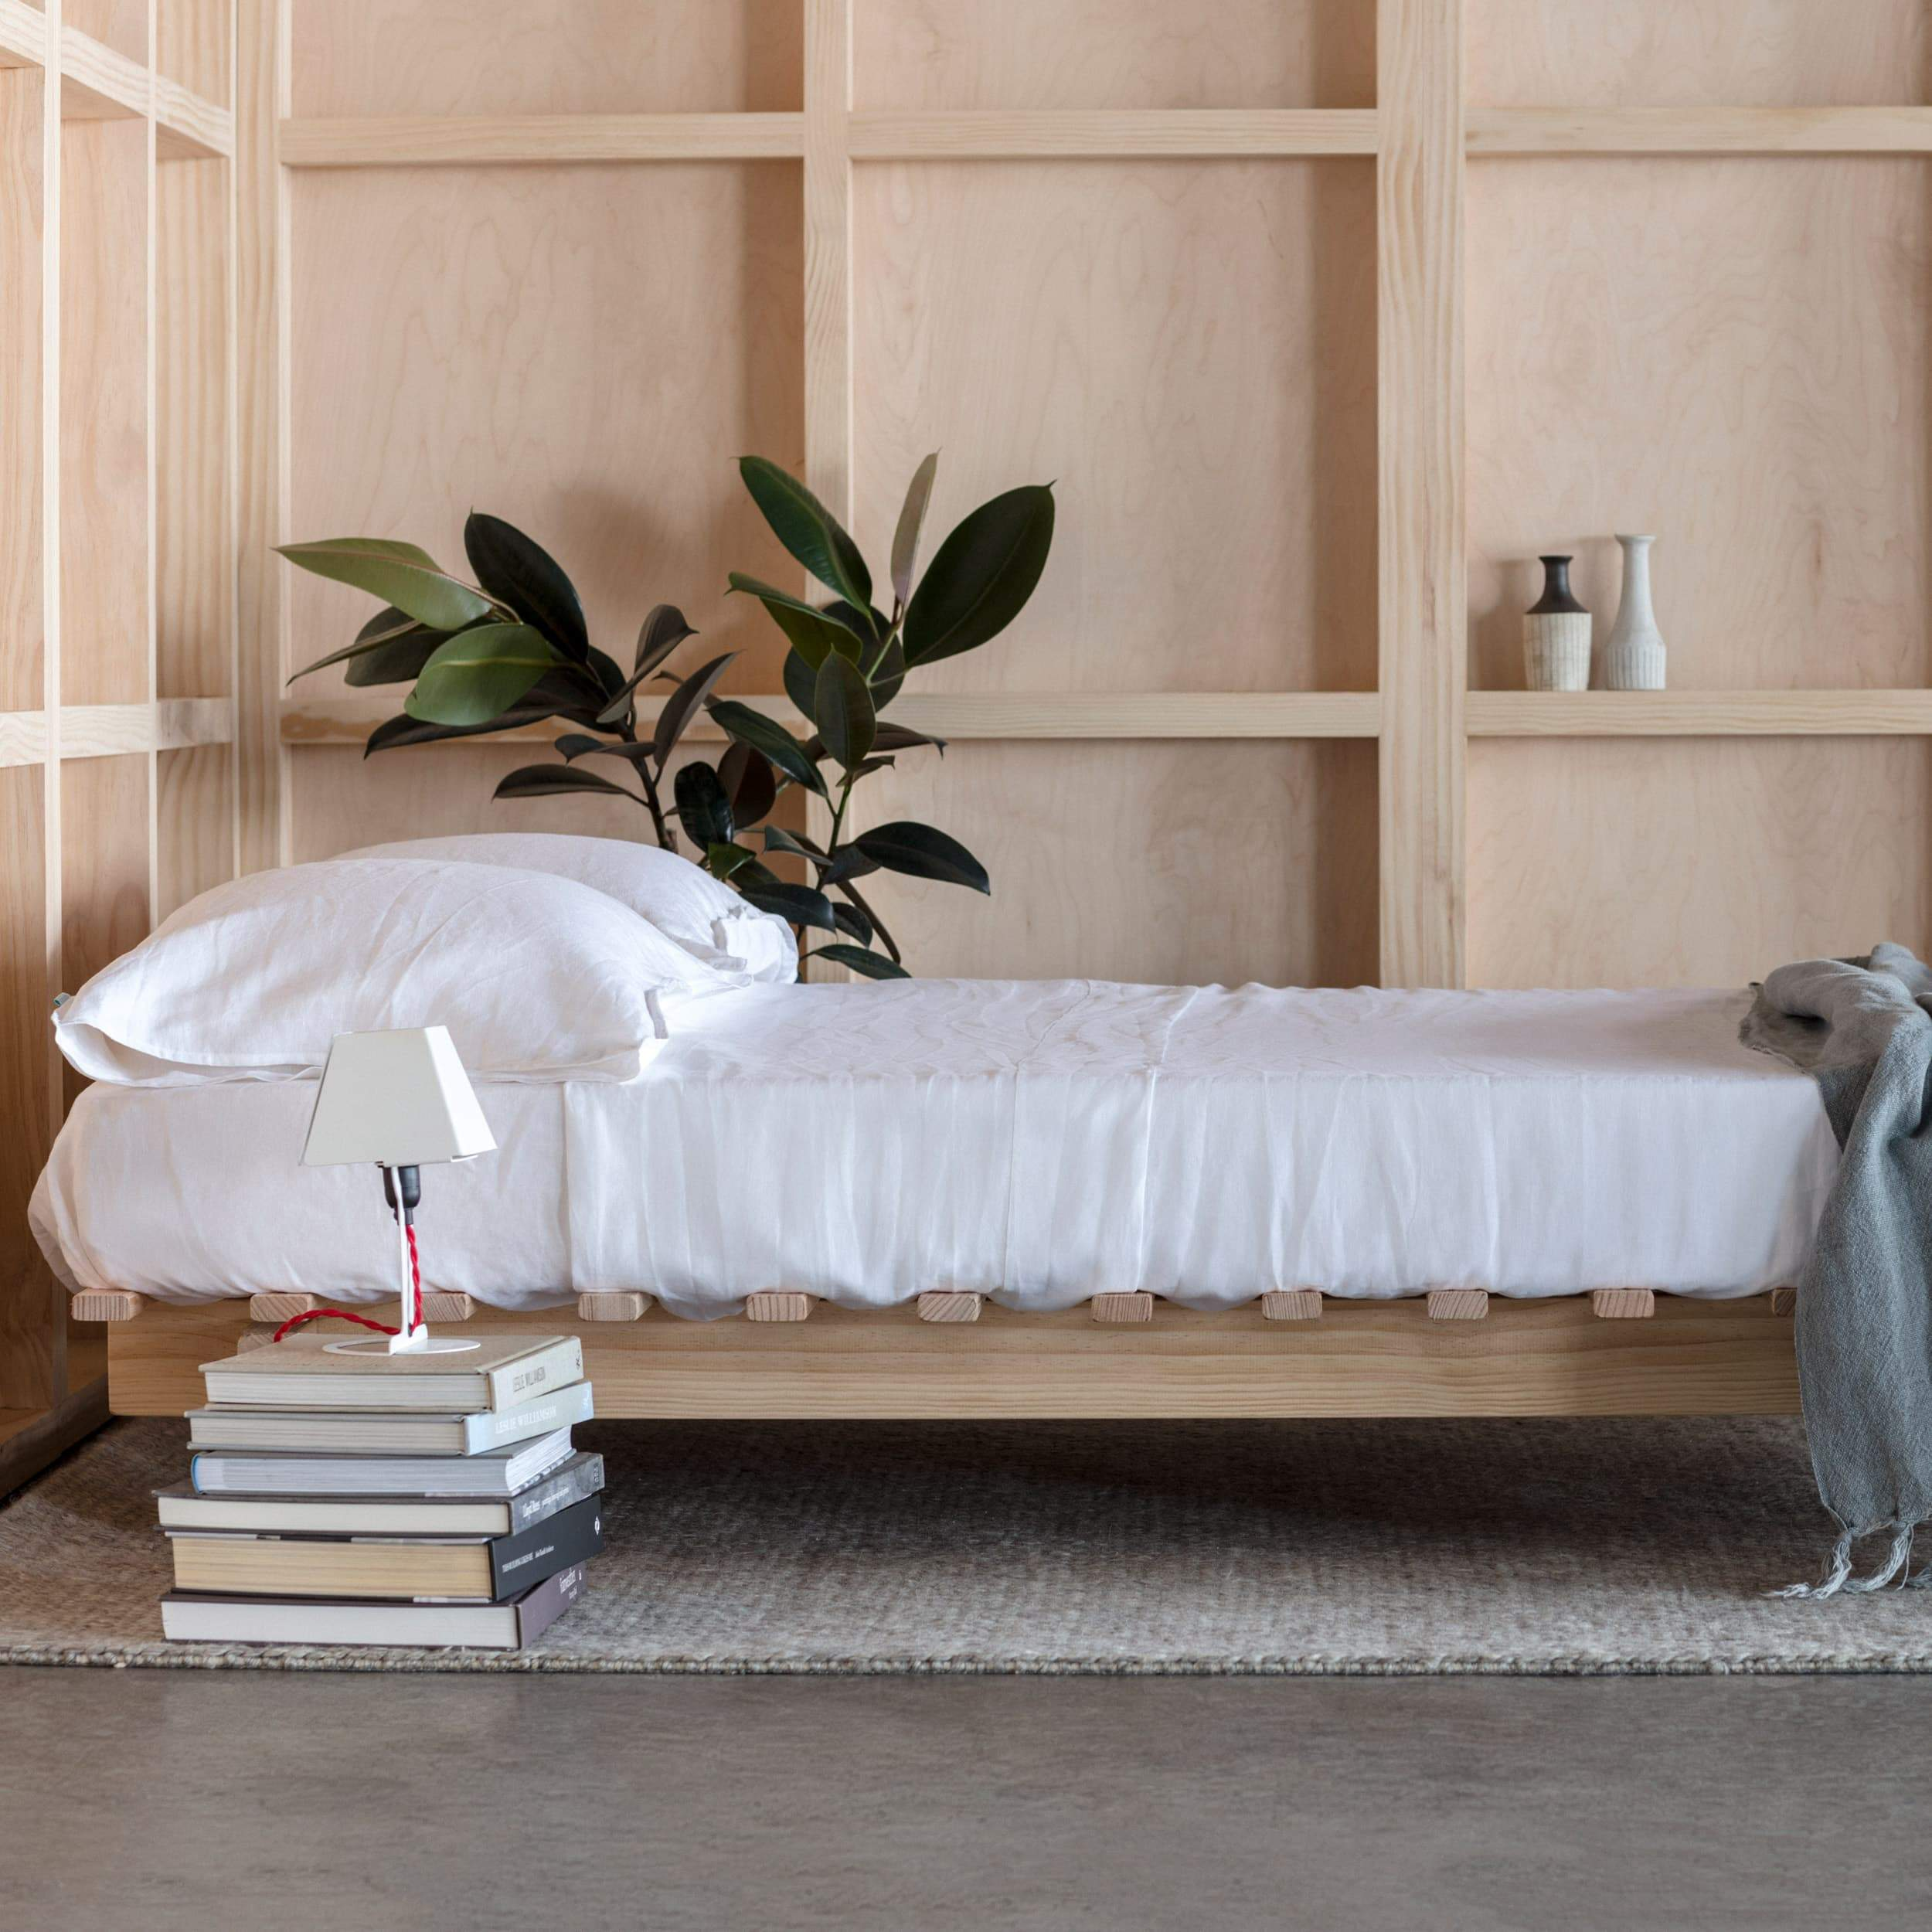 TNBC bed linen collection.